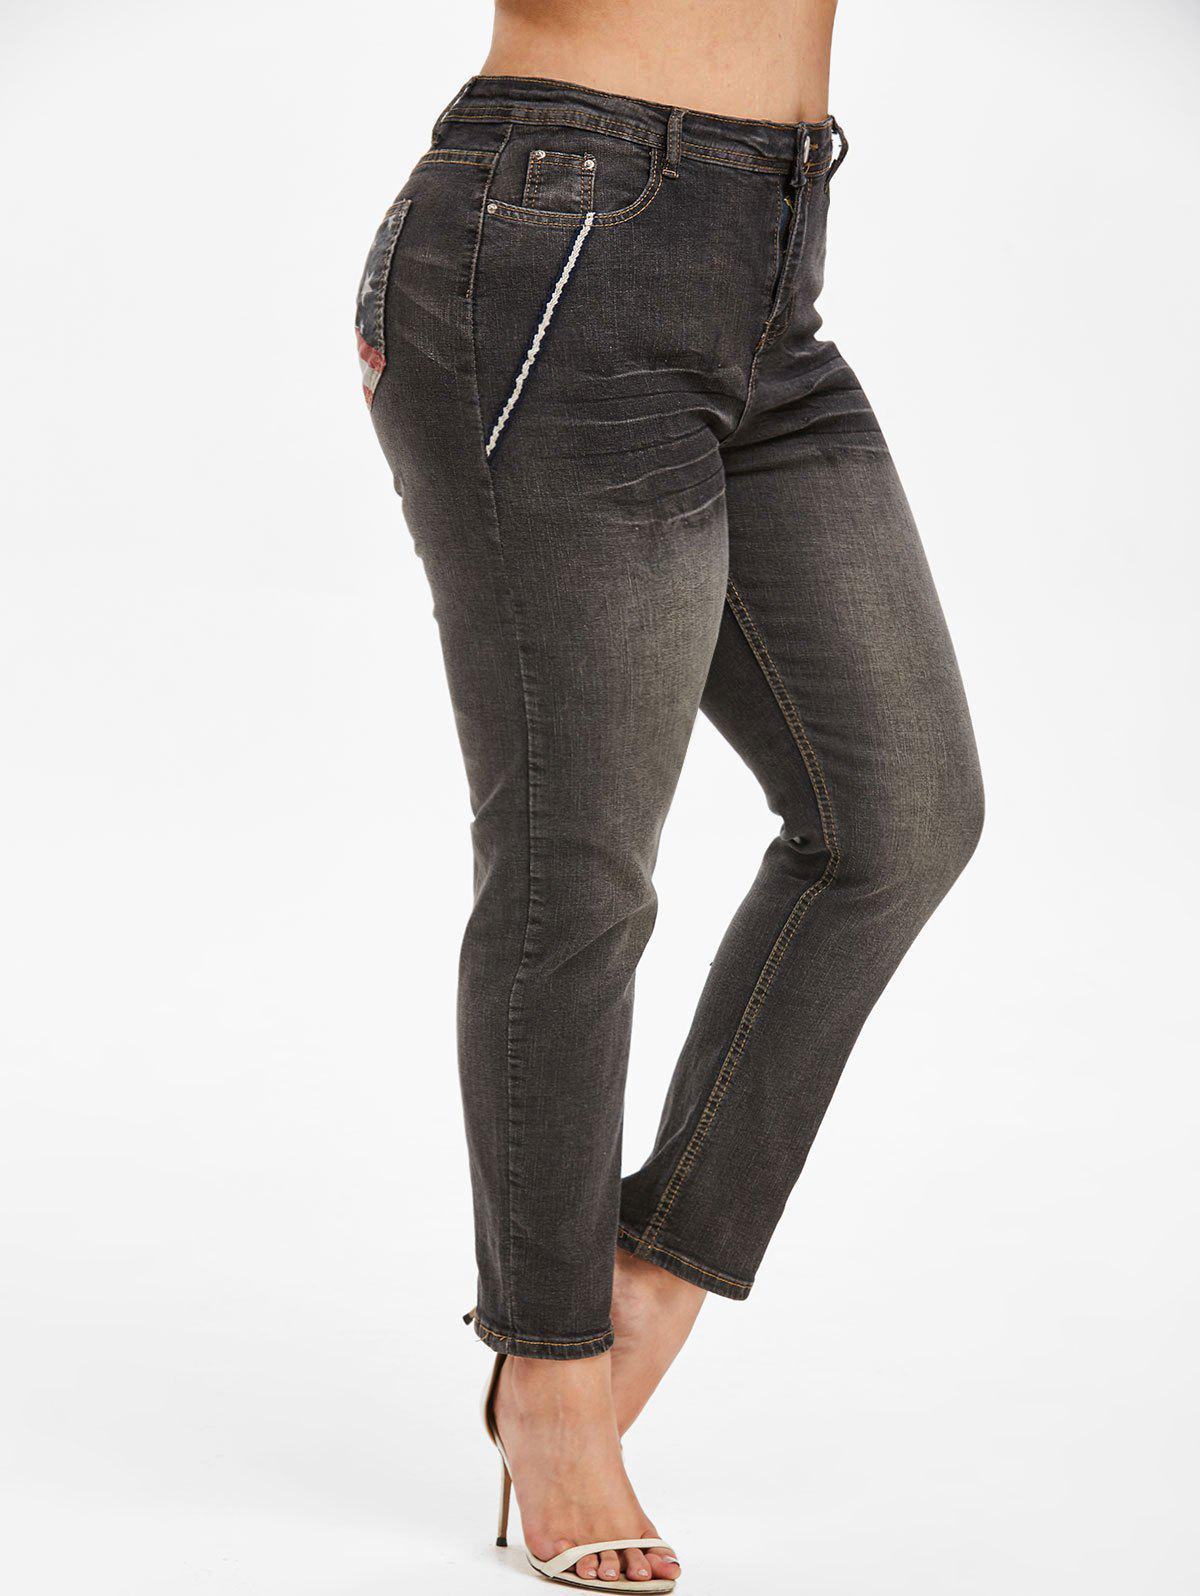 Shops Contrast Trim American Flag Plus Size Stovepipe Jeans